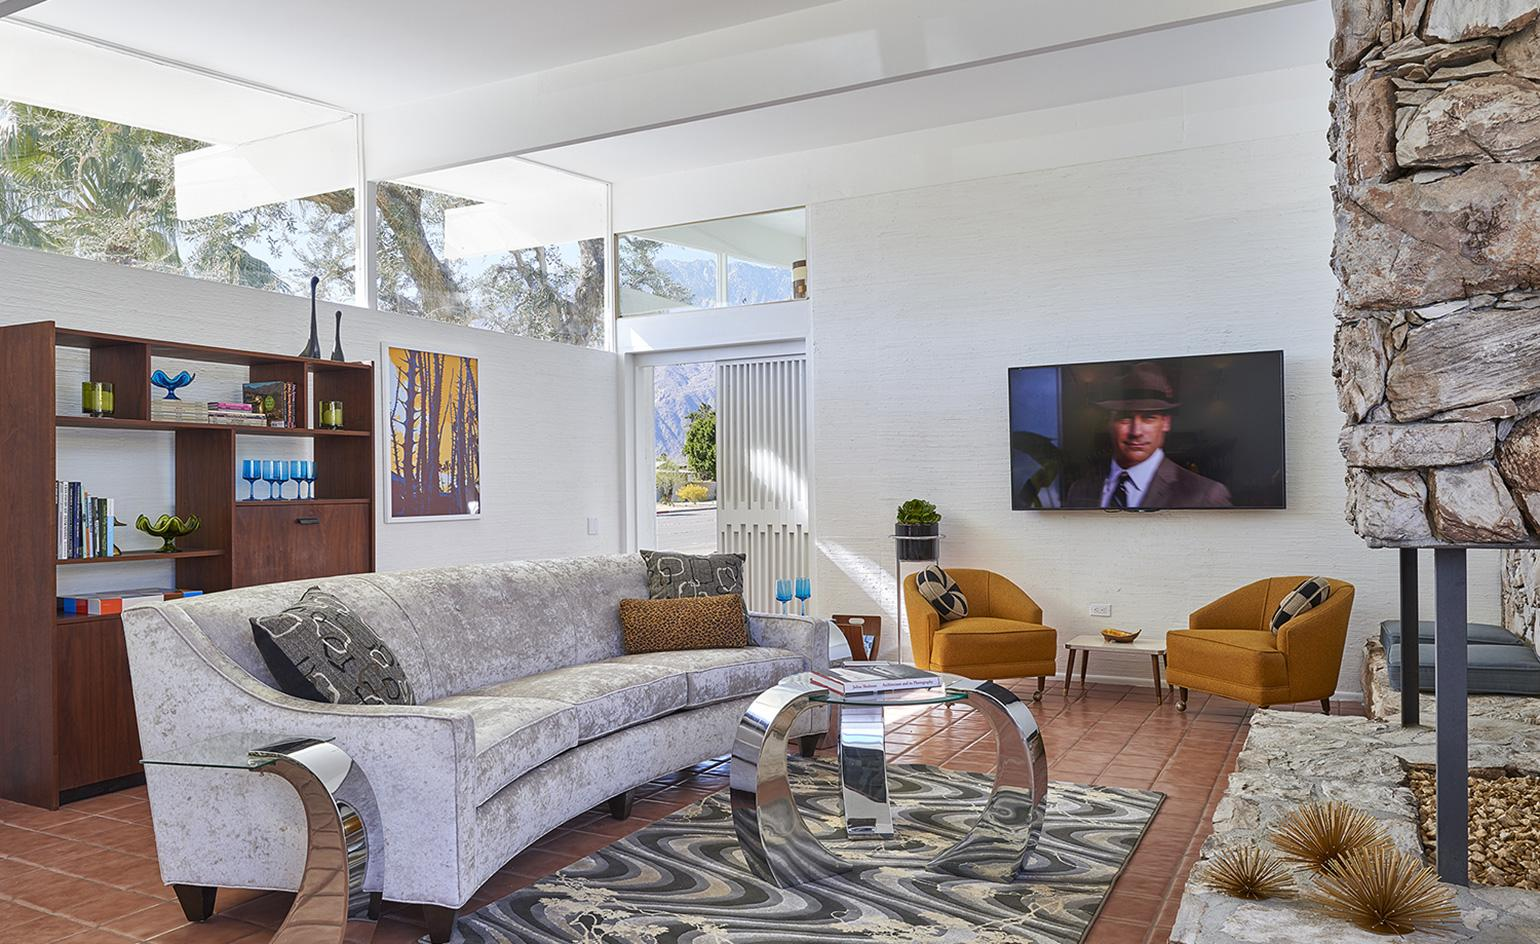 The Monkey Tree Hotel Review, Palm Springs, California